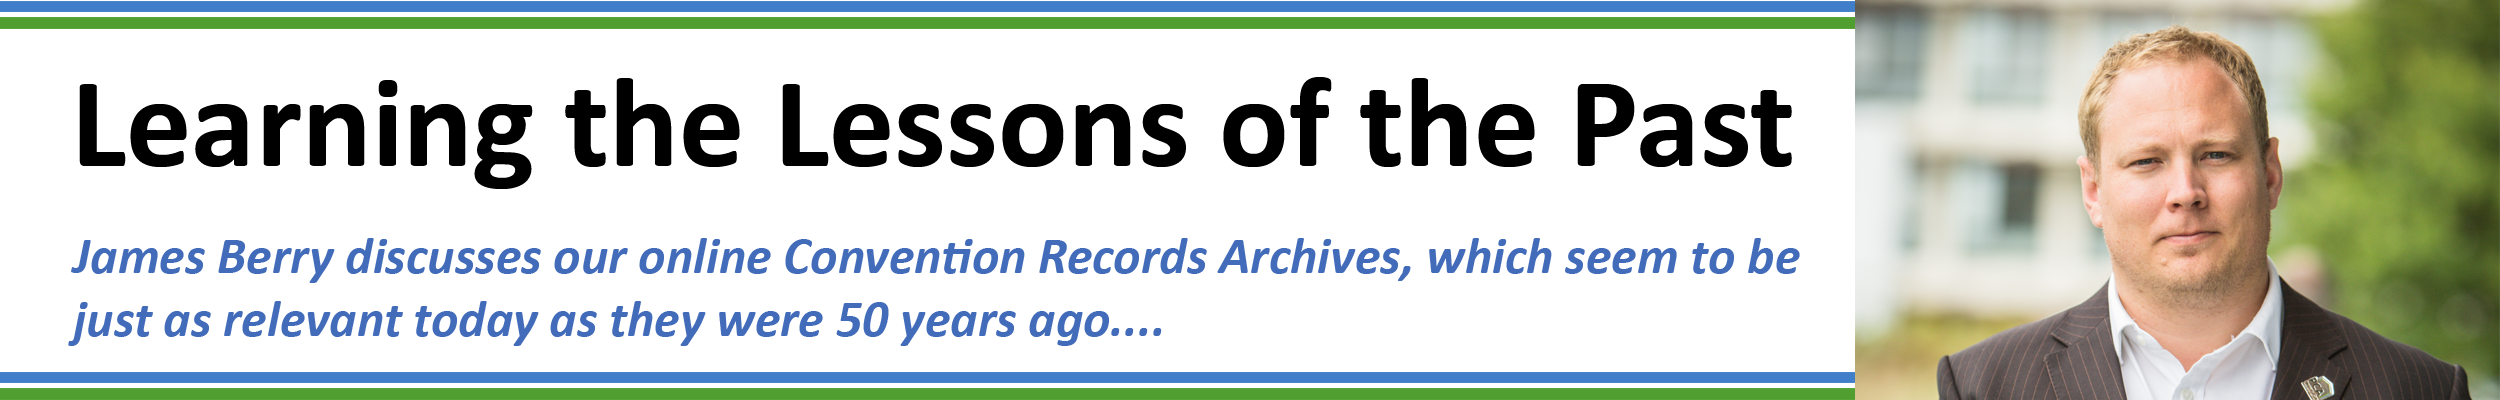 PCA Convention Records_Learning the Lessons from the Past